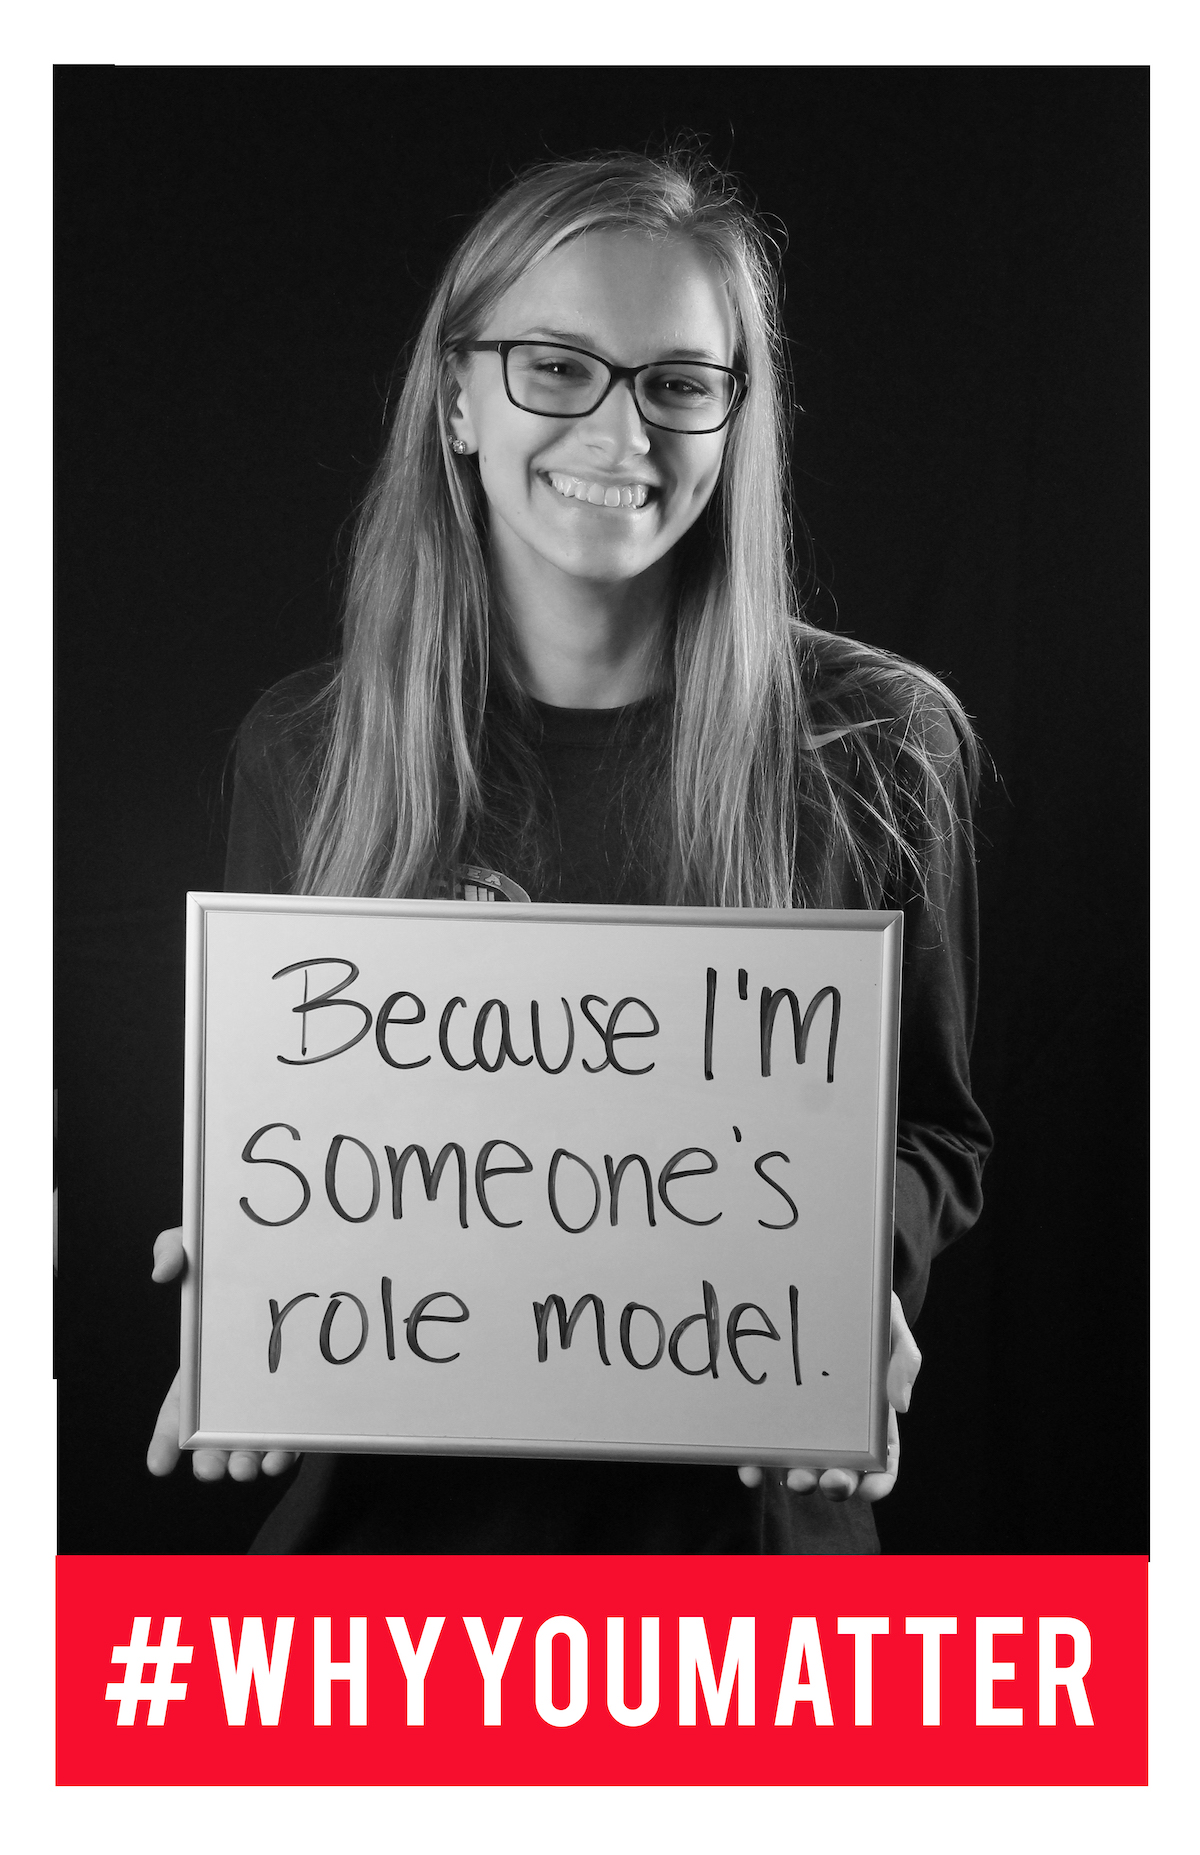 image of student holding sign 'because I'm someone's role model.'